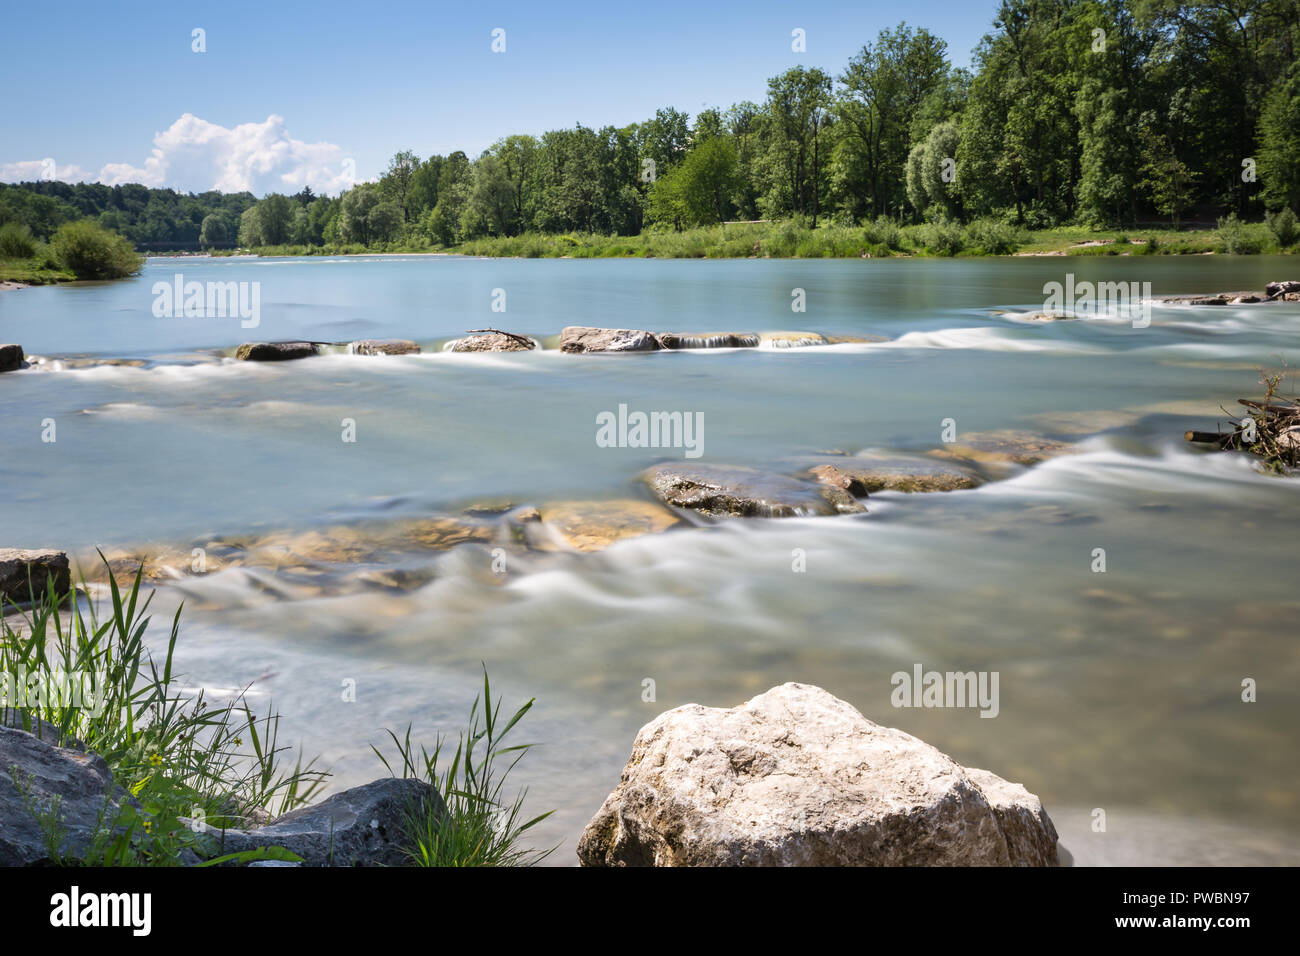 Longtime Exposure of River with River Steps and River Bank in Munich, Bavaria, Germany, Europe - Stock Image